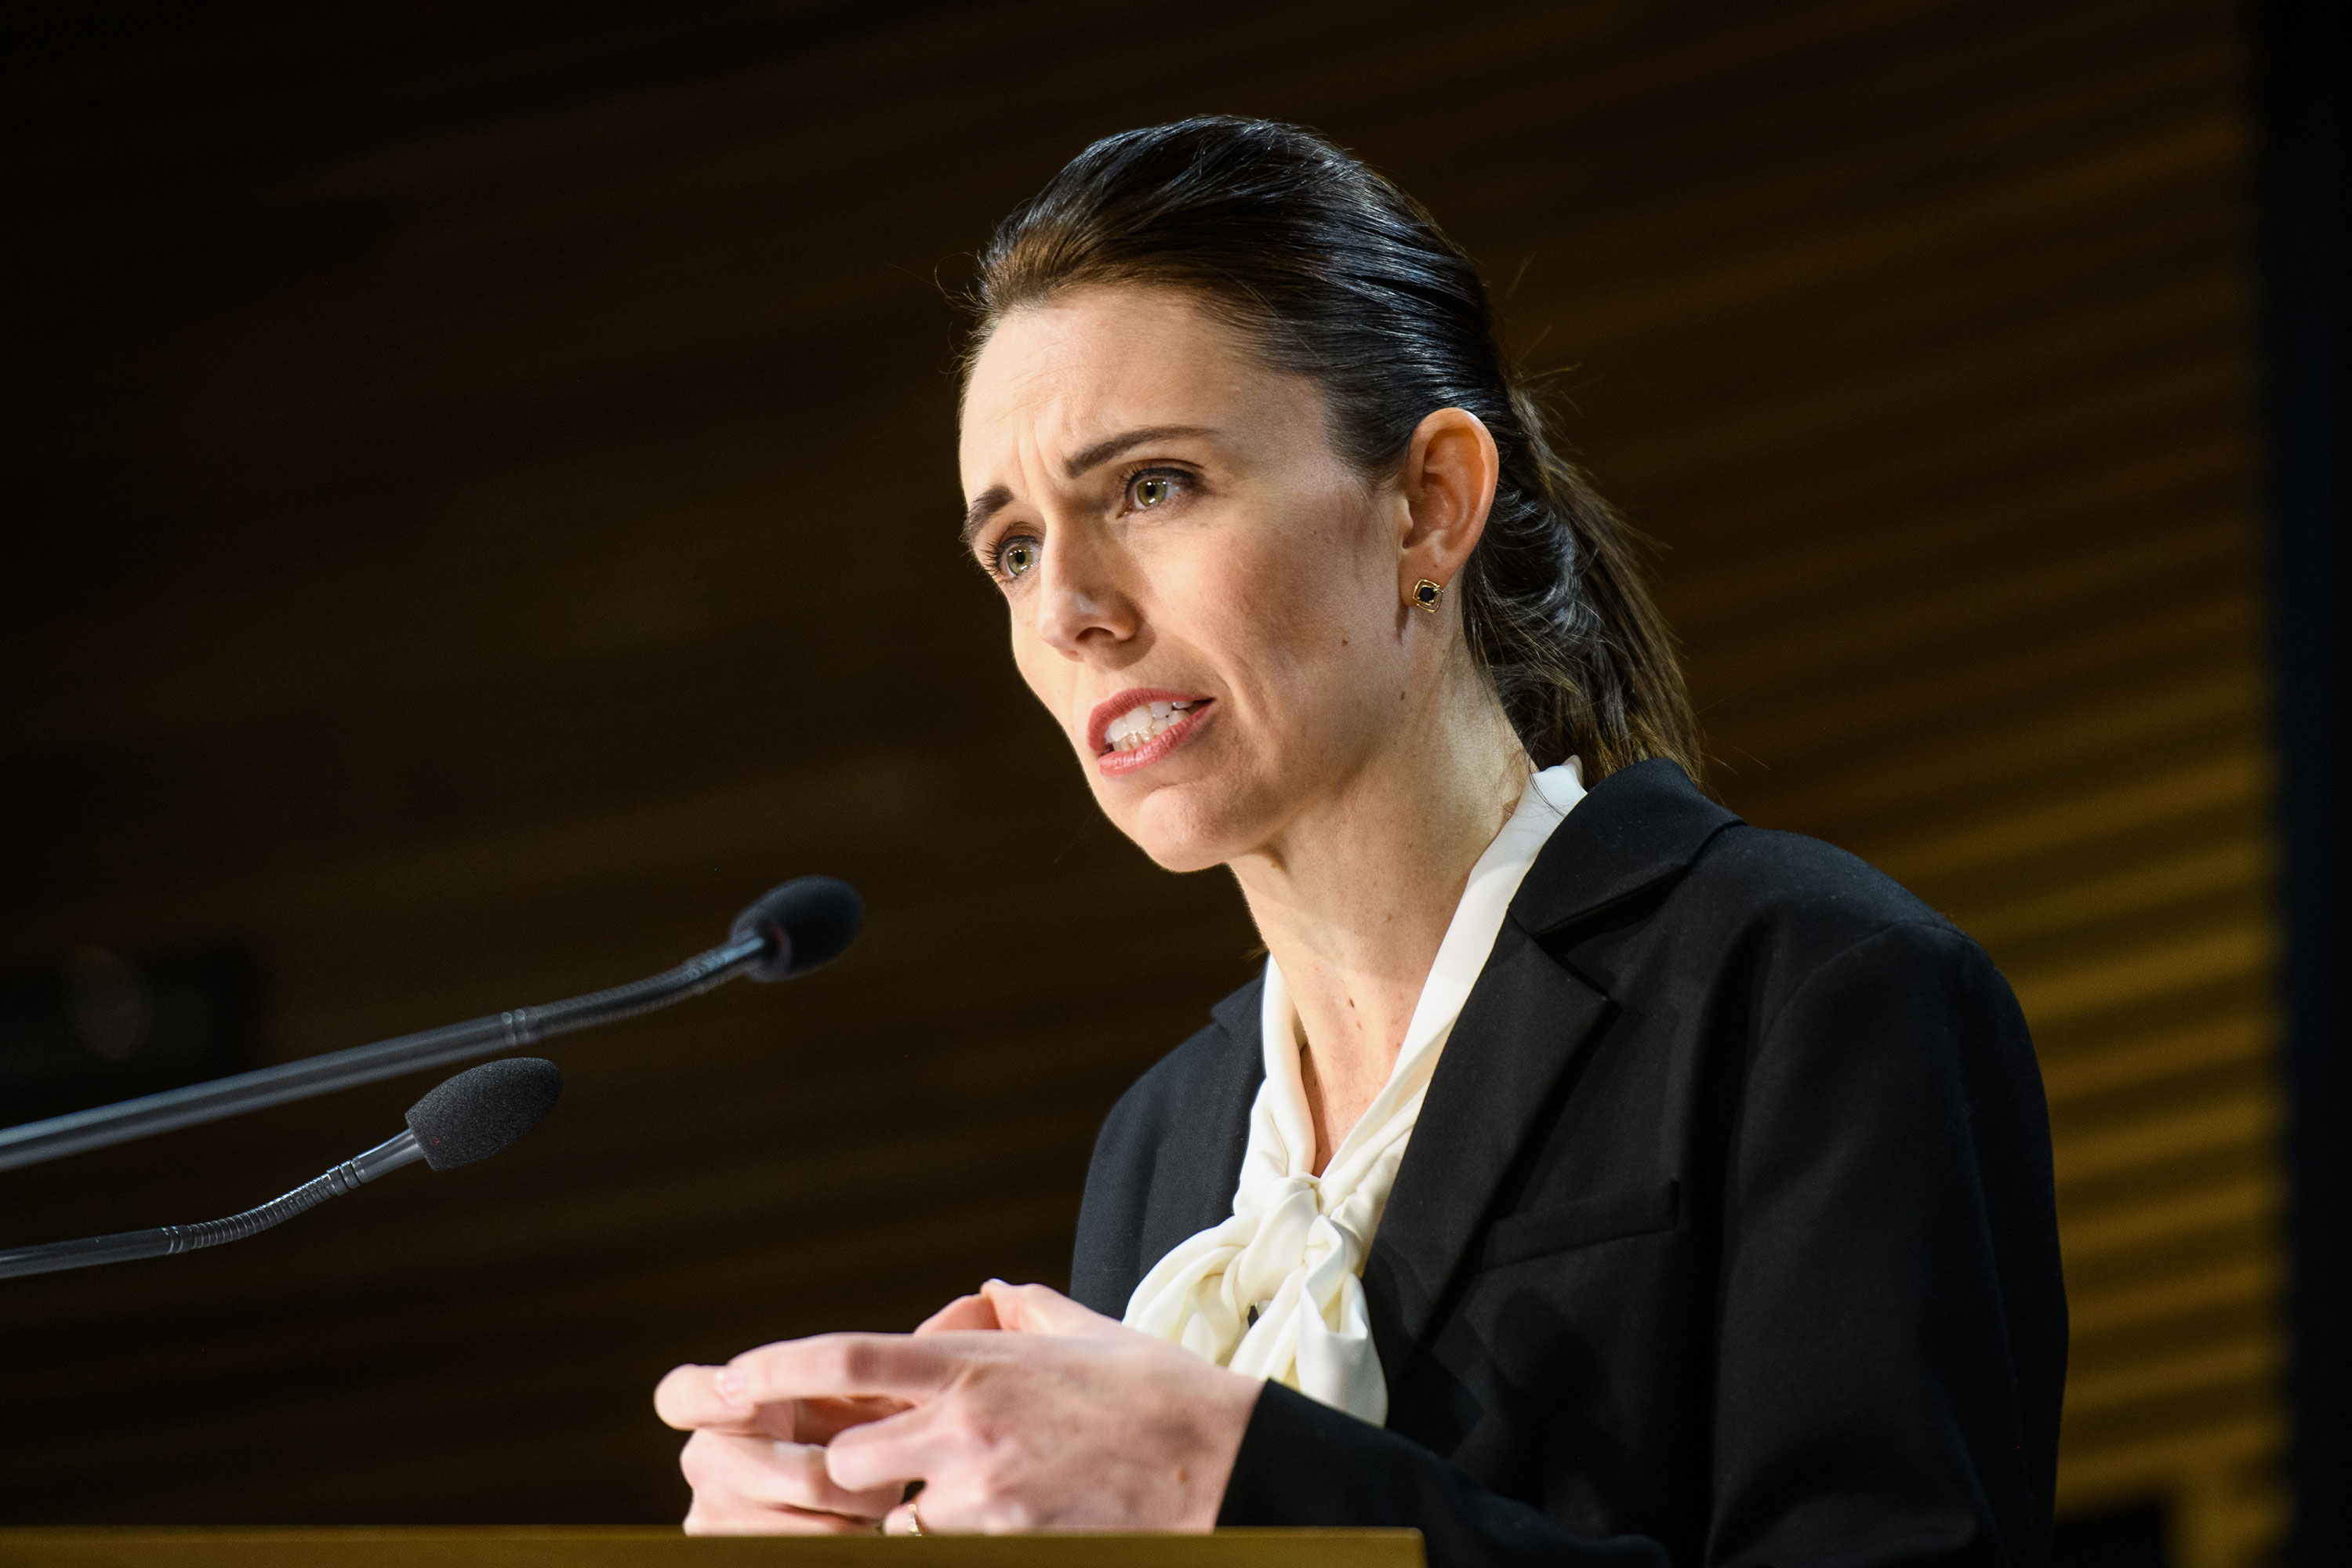 Prime Minister Jacinda Ardern speaks with media at a Covid-19 briefing on August 13 in Wellington, New Zealand.